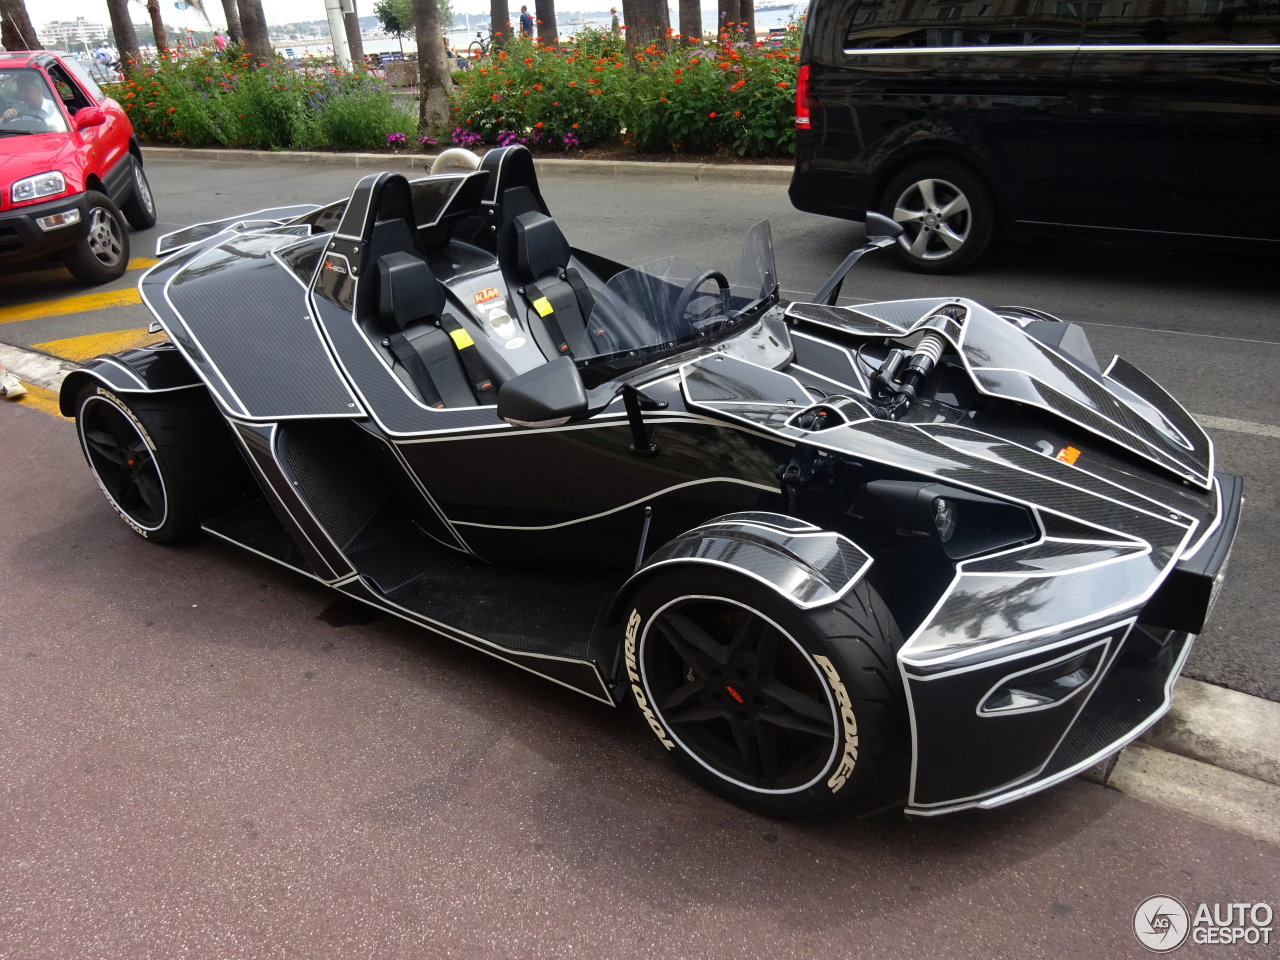 ktm x bow r 9 august 2016 autogespot. Black Bedroom Furniture Sets. Home Design Ideas